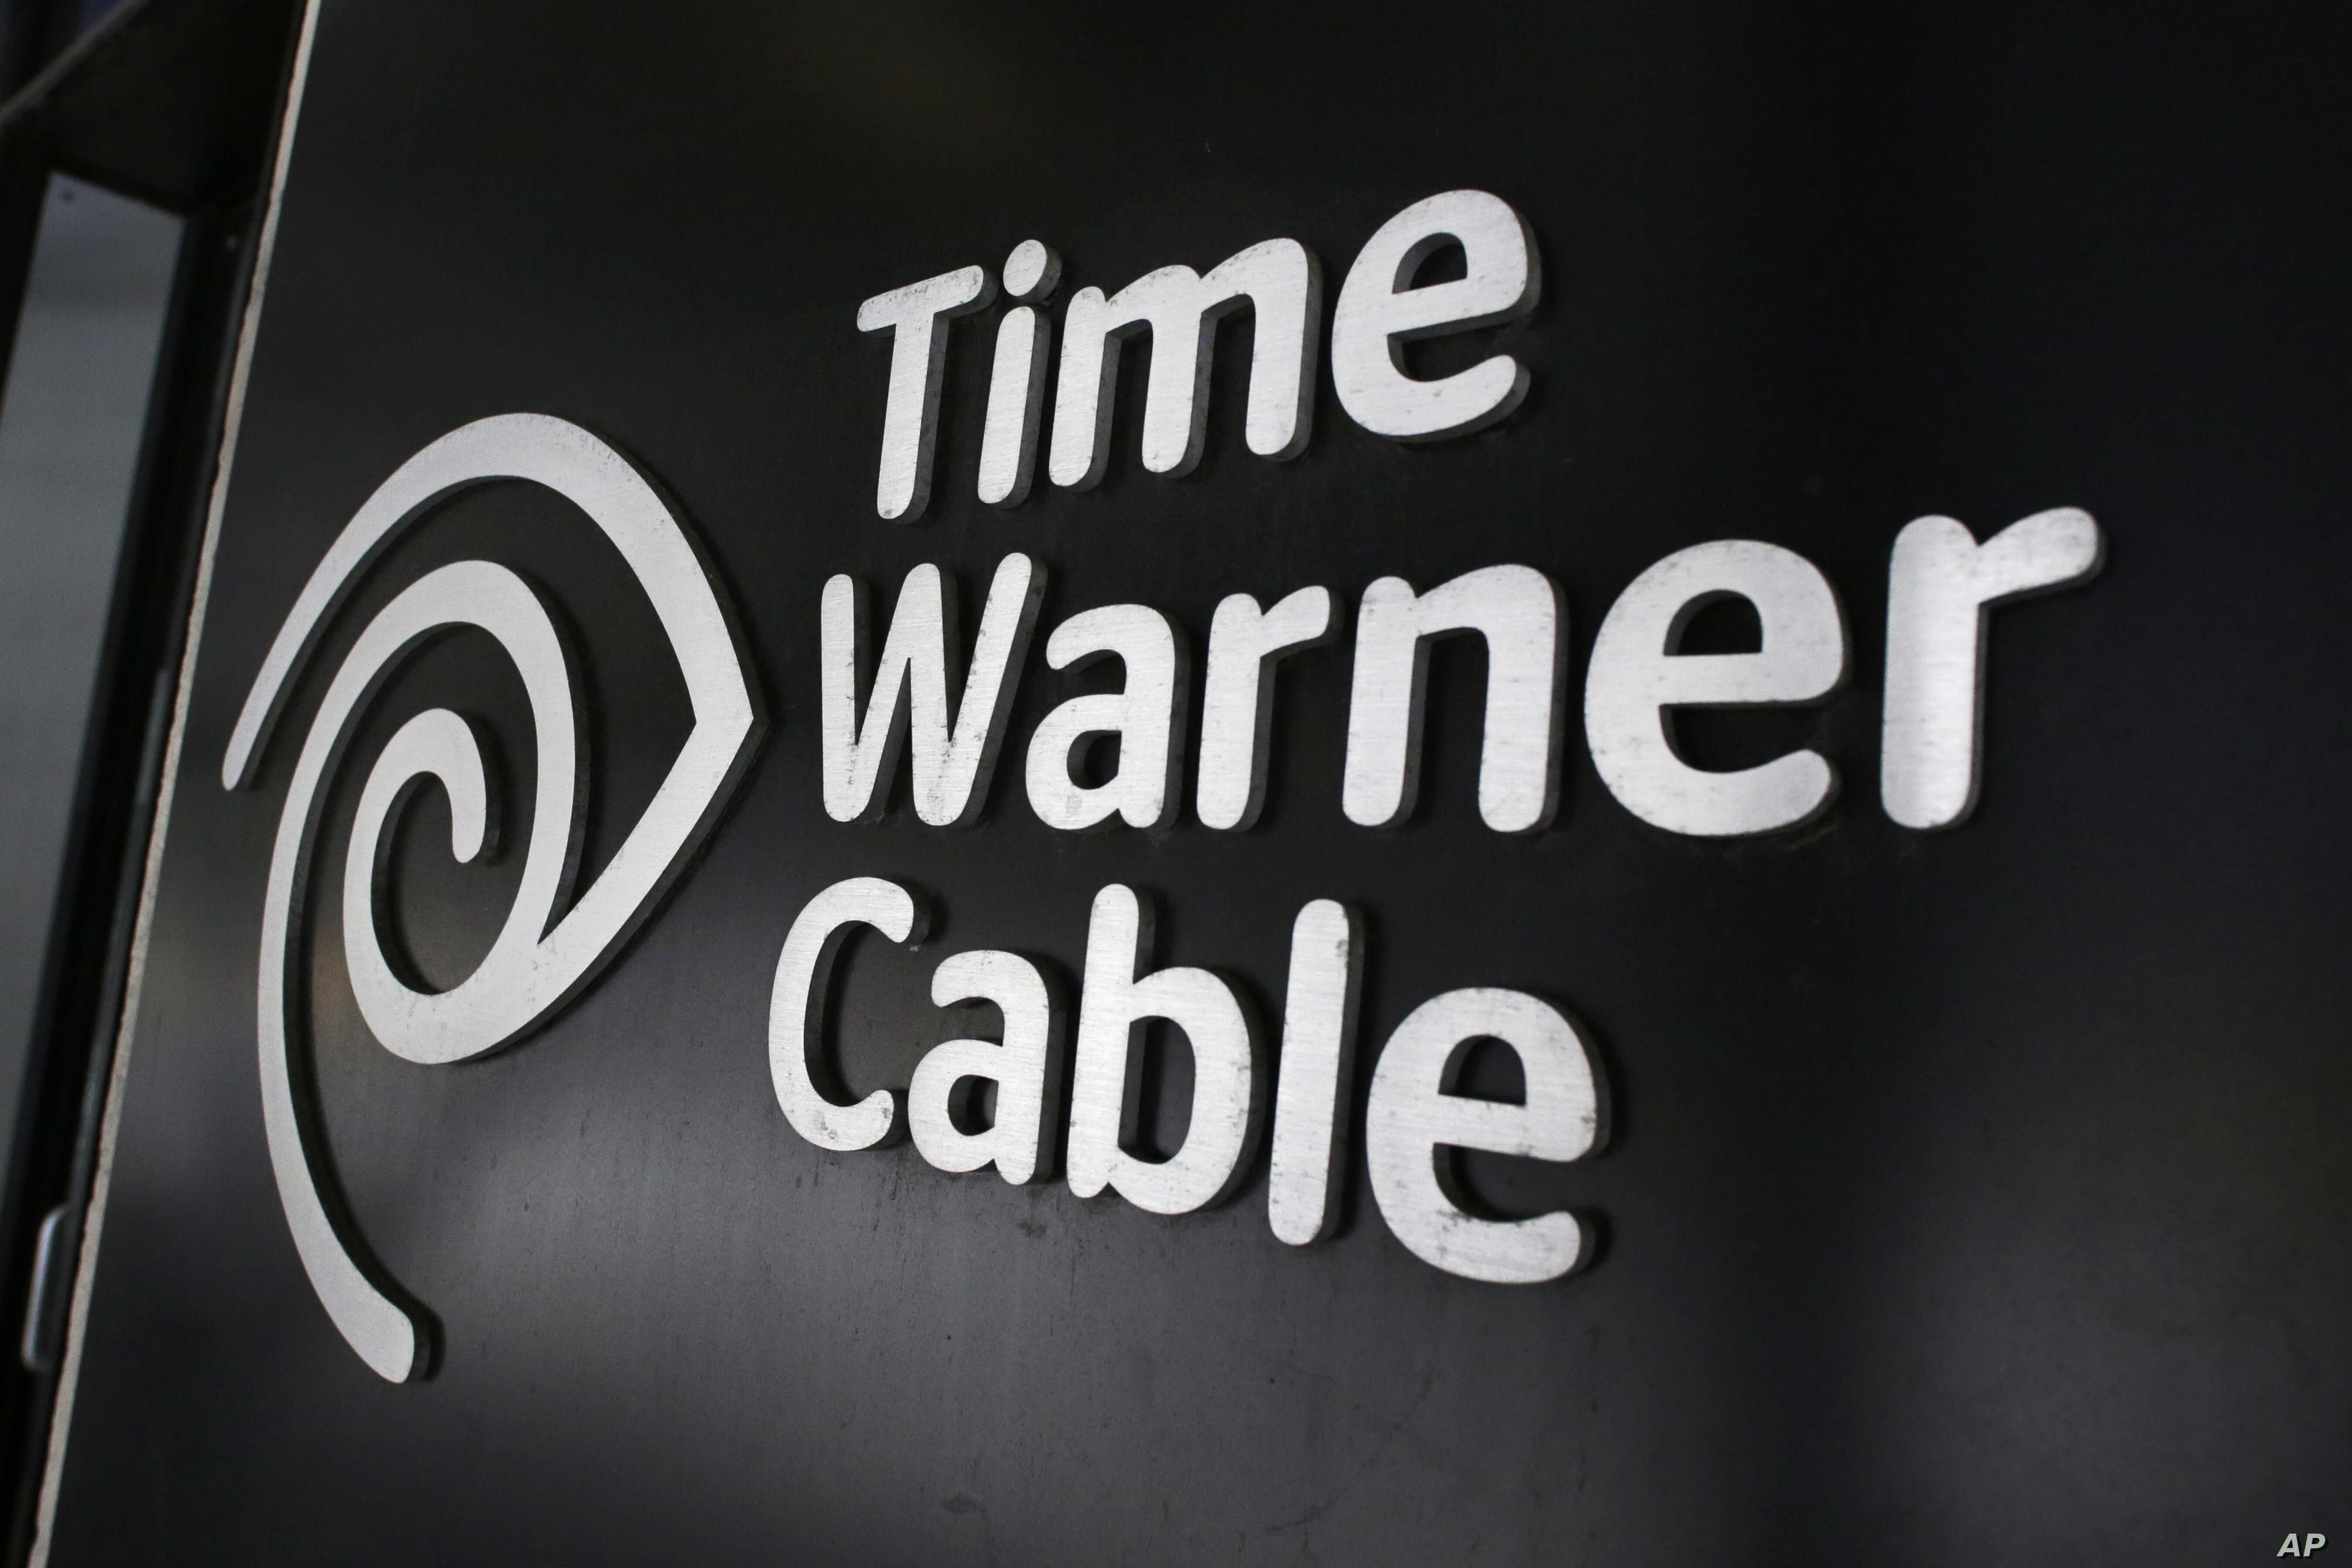 FILE - The Time Warner Cable corporate logo is displayed at a company store, in New York, May 26, 2015. U.S. lawmakers are skeptical about the entertainments giant's proposed merger with telecommunications powerhouse AT&T.